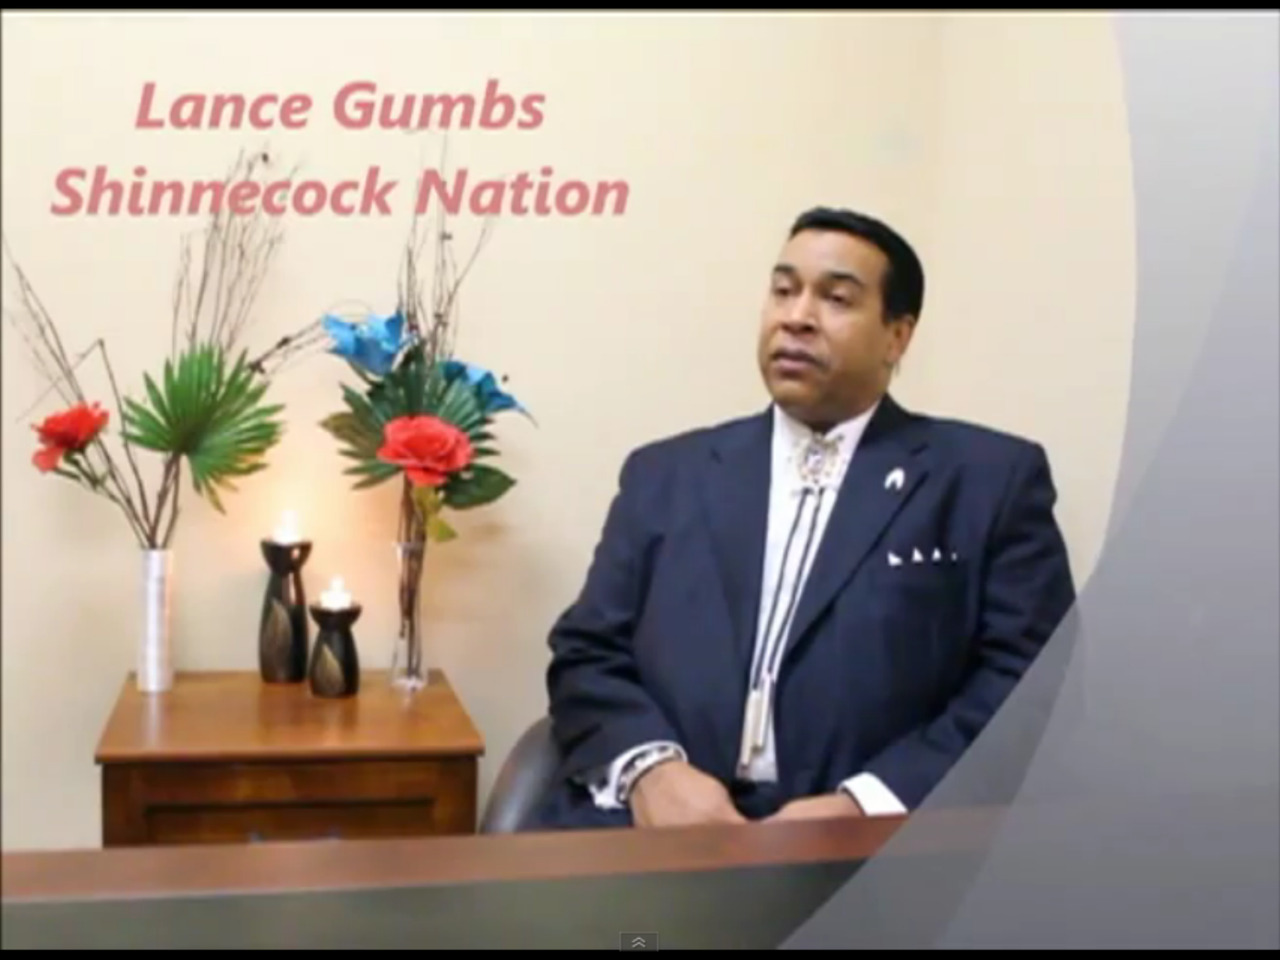 Lance Gumbs (Shinnecock)- Indigenous member of The National Committee on American Indians.